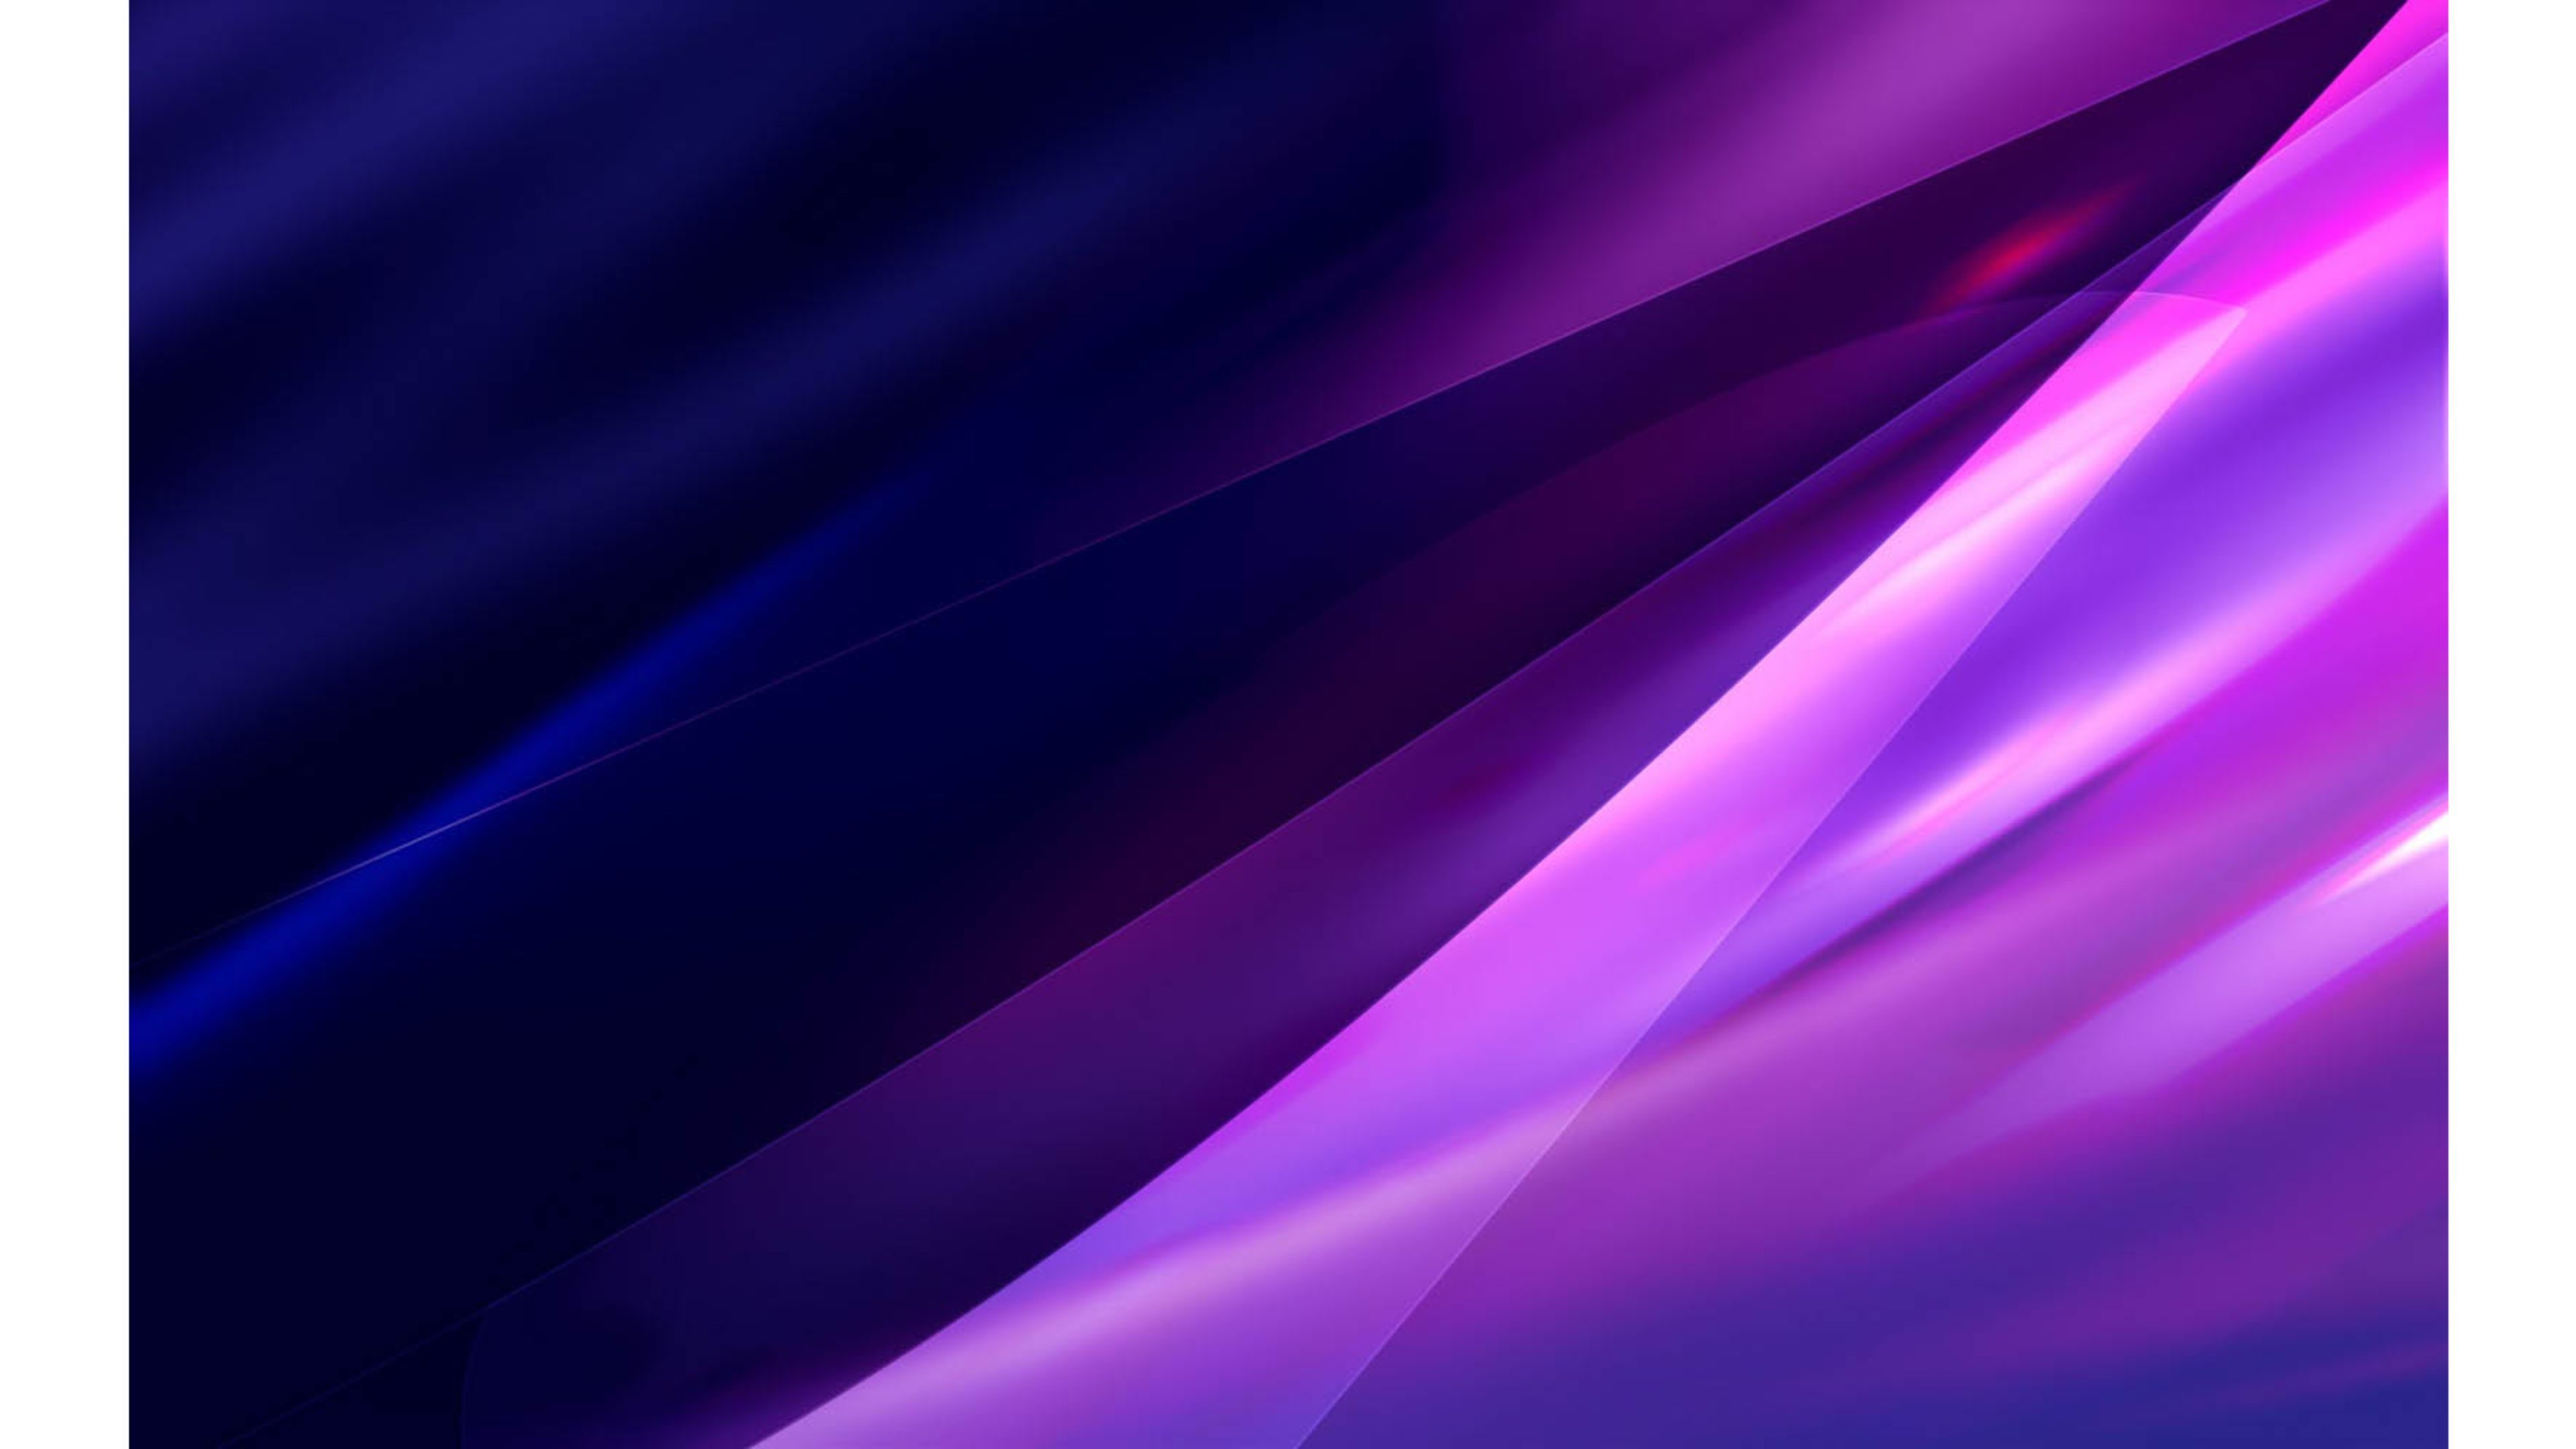 Purple Waves Abstract 4k Wallpaper Free 4k Wallpaper Purple Background Images Purple Backgrounds Purple Abstract